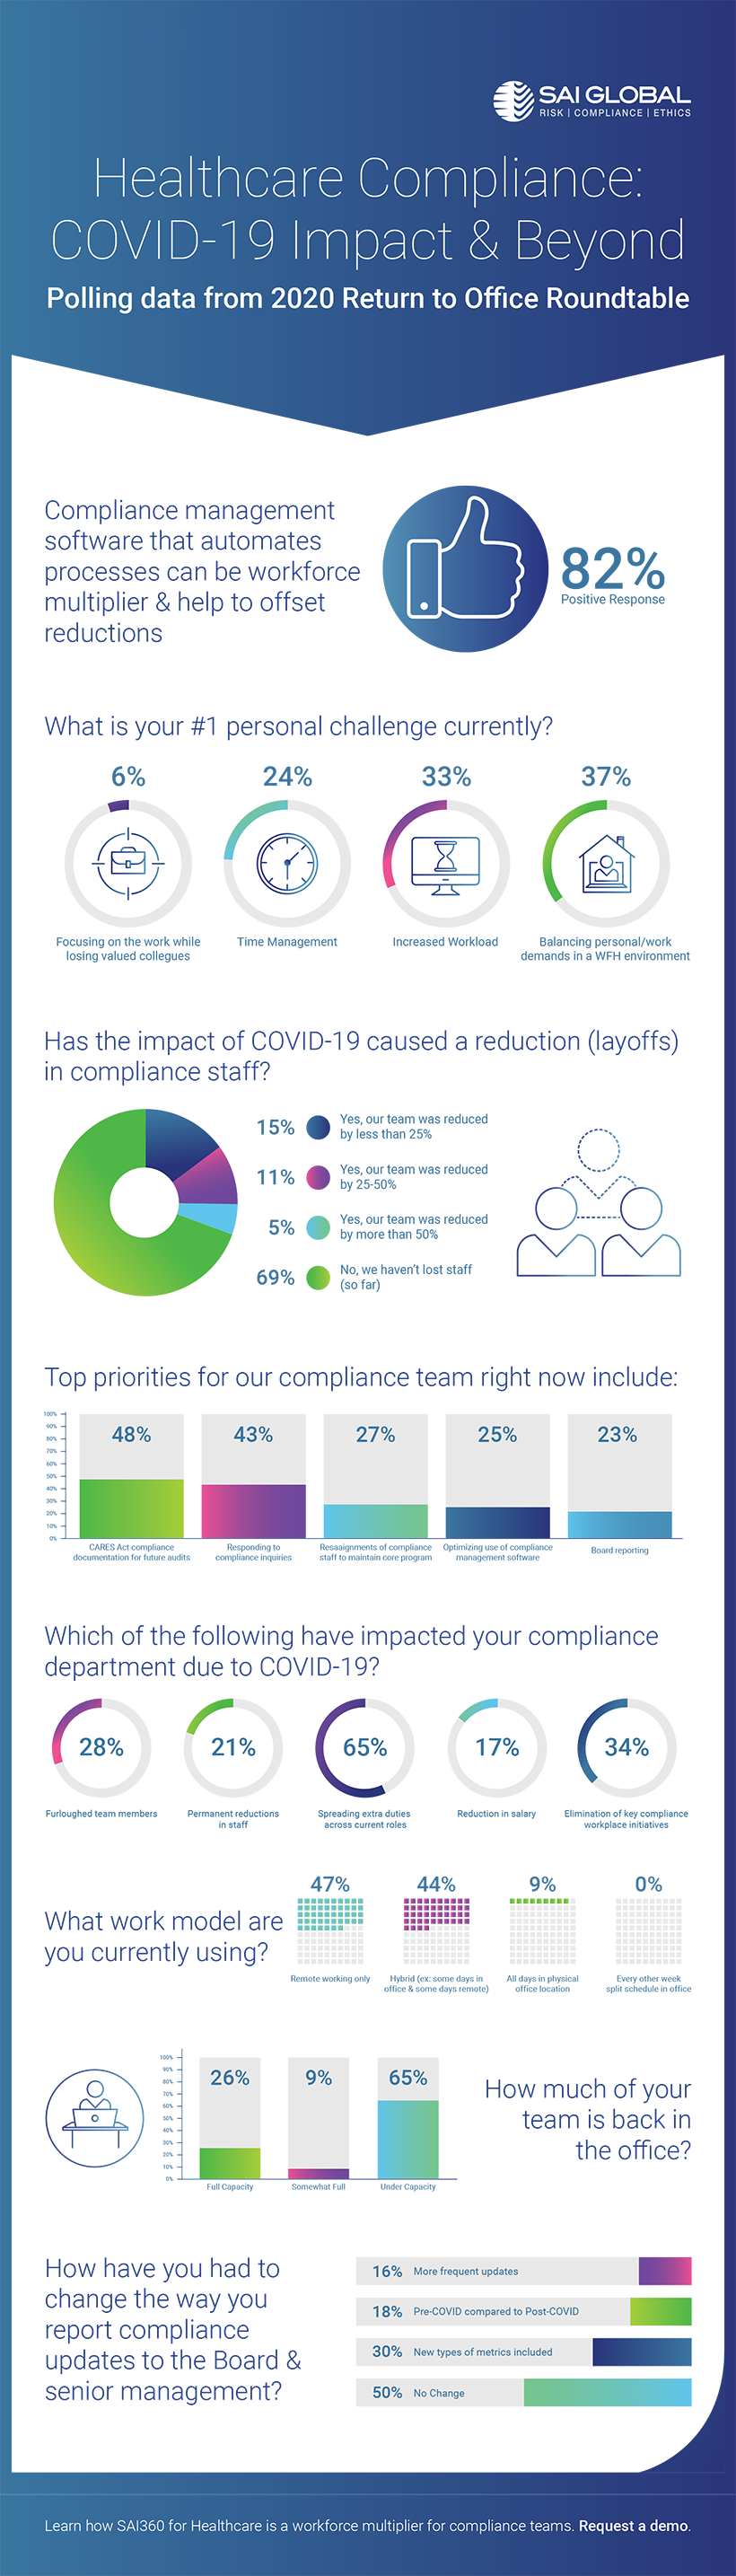 Healthcare Compliance: COVID-19 Impact and Beyond